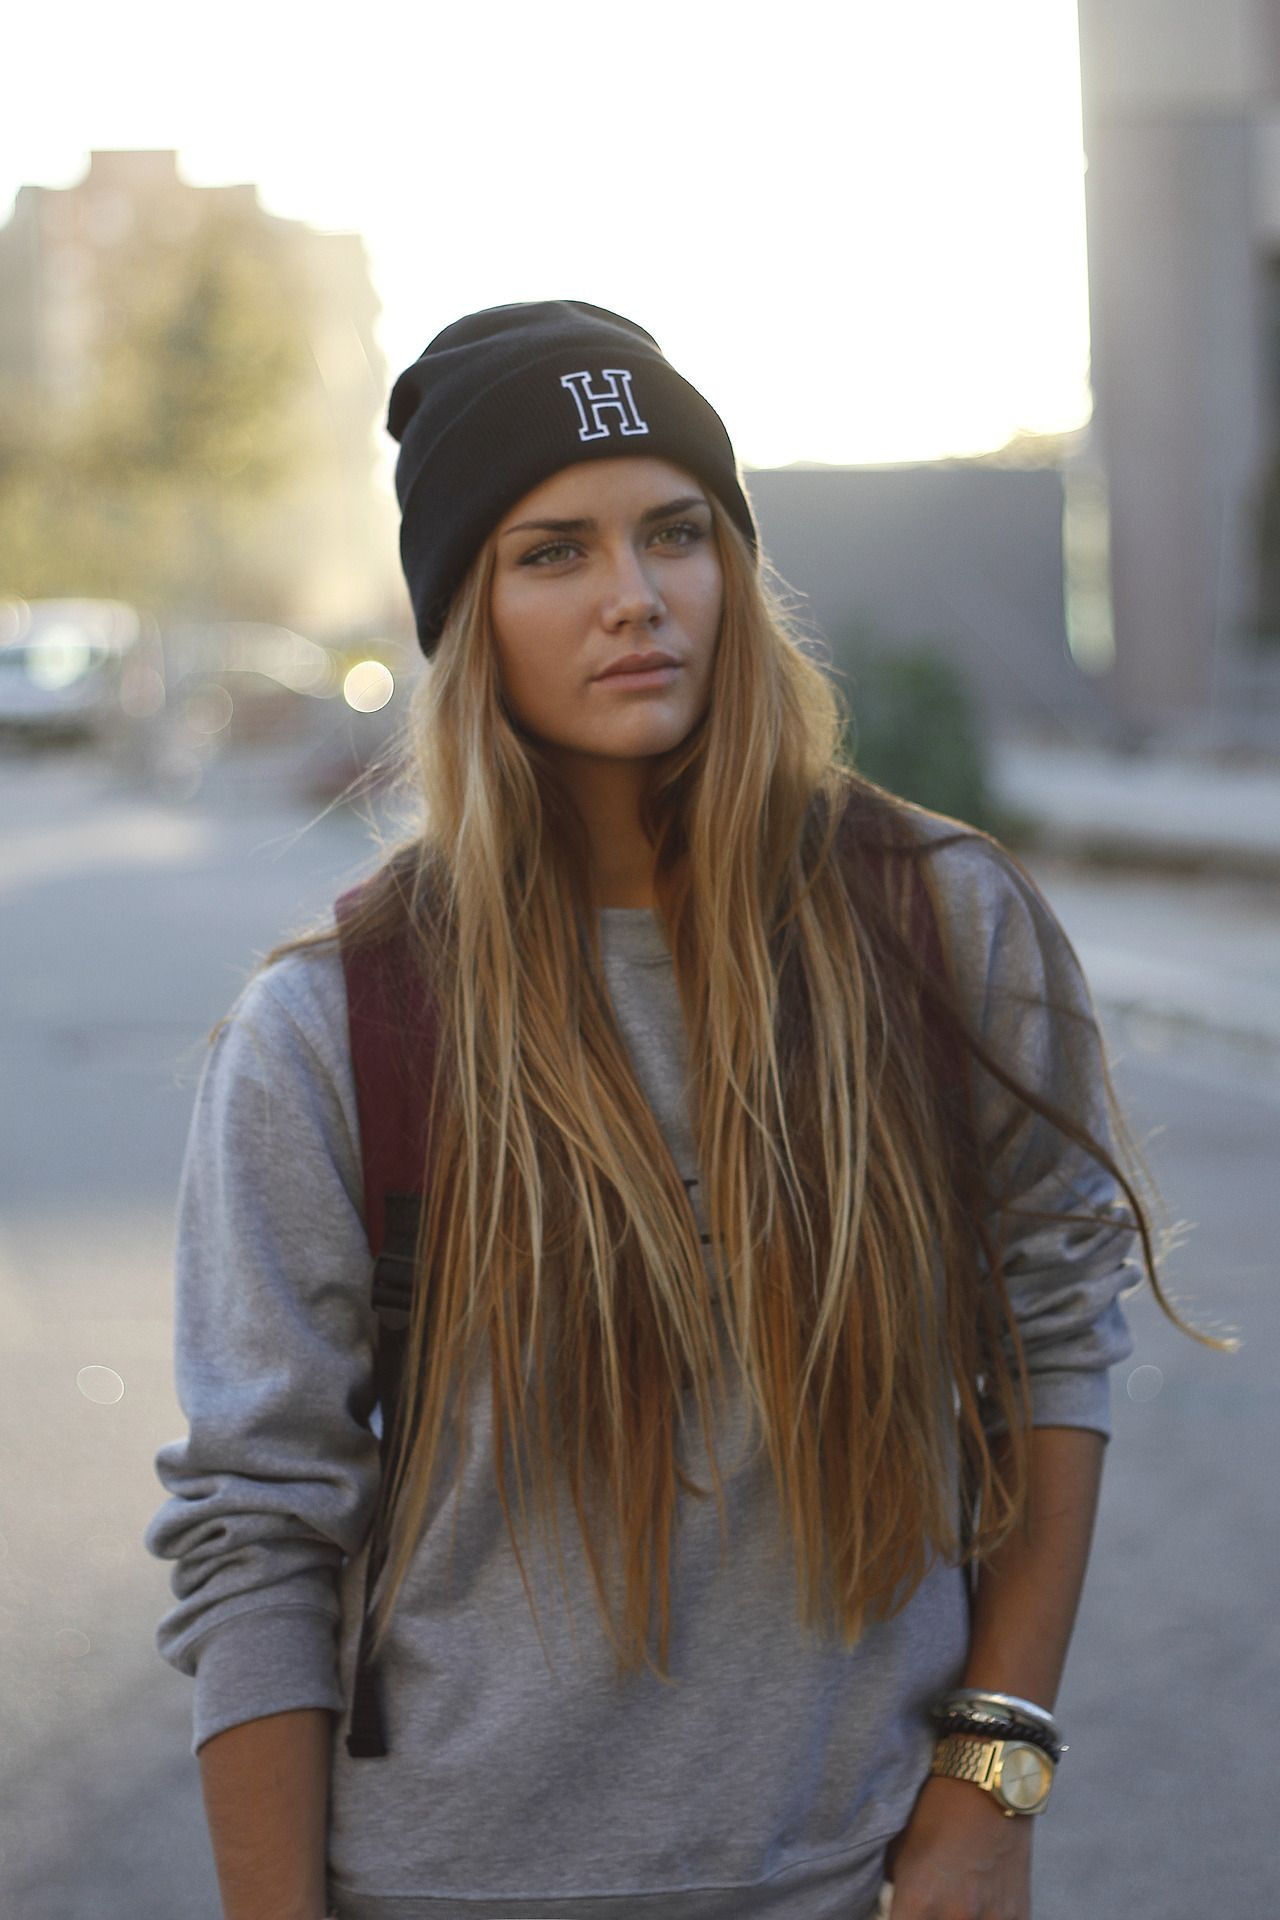 realdisc0very: | ╬street fashion╬ | pinterest | urban, stay gold